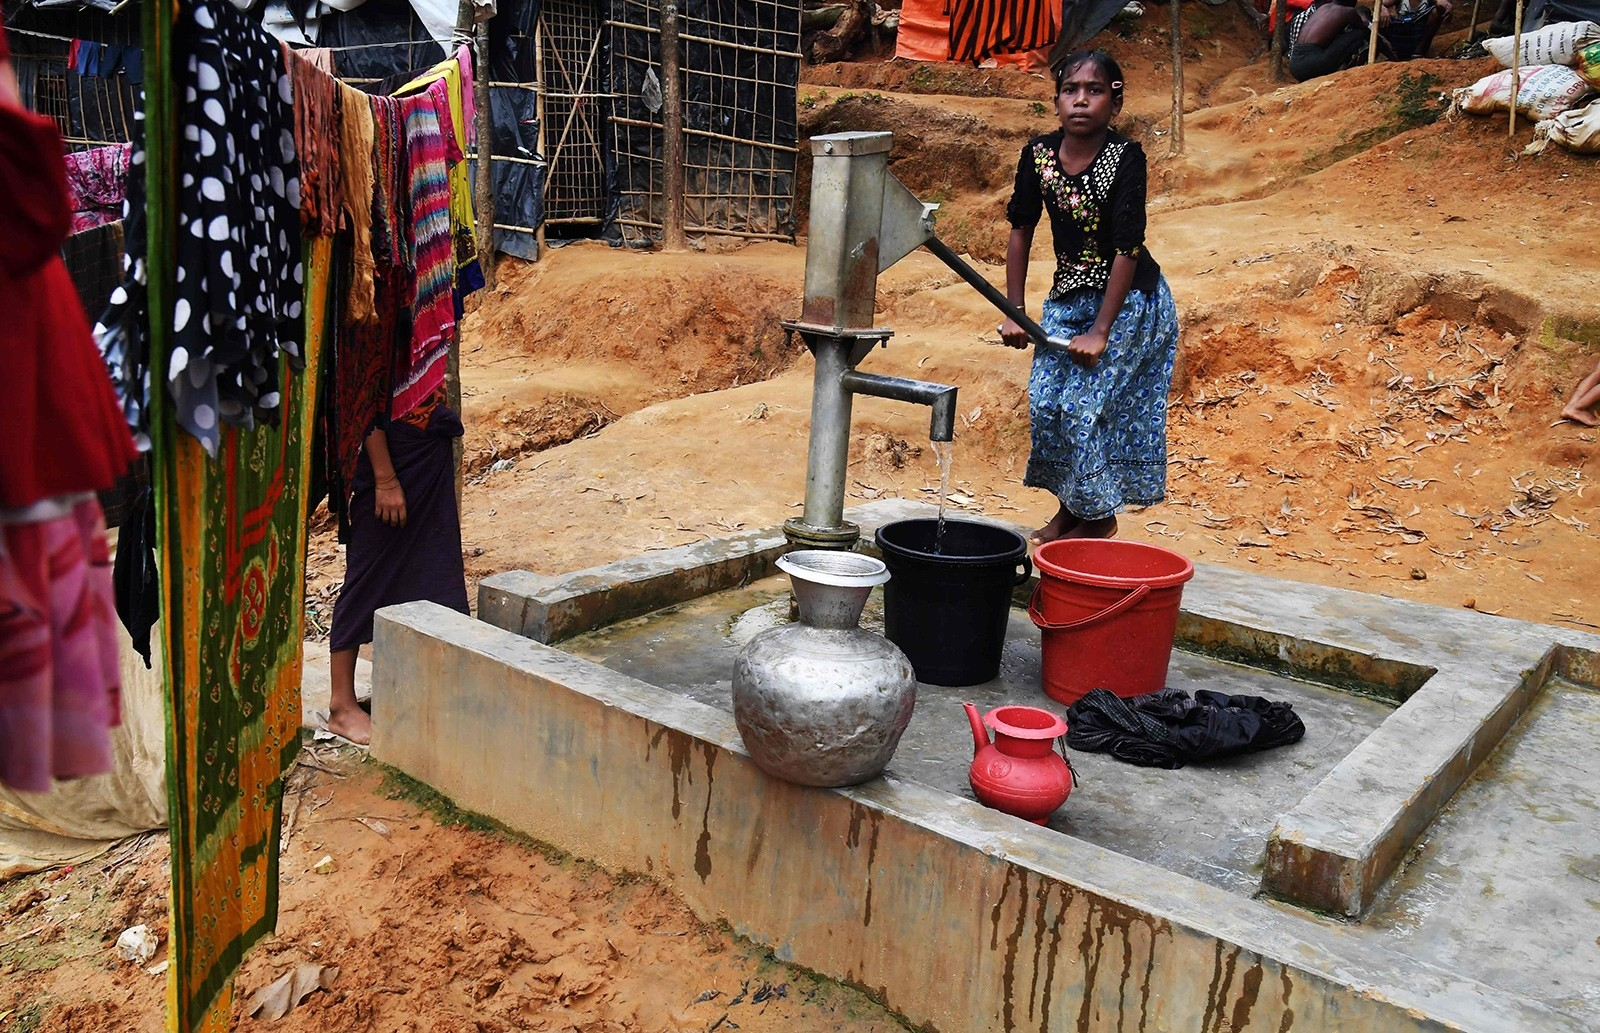 This picture taken November 4, 2017 shows ten-year-old Rohingya refugee Tahera Begum collecting water from a hand-pump at the Balukhali refugee camp in Bangladesh's Ukhia district (AFP Photo)